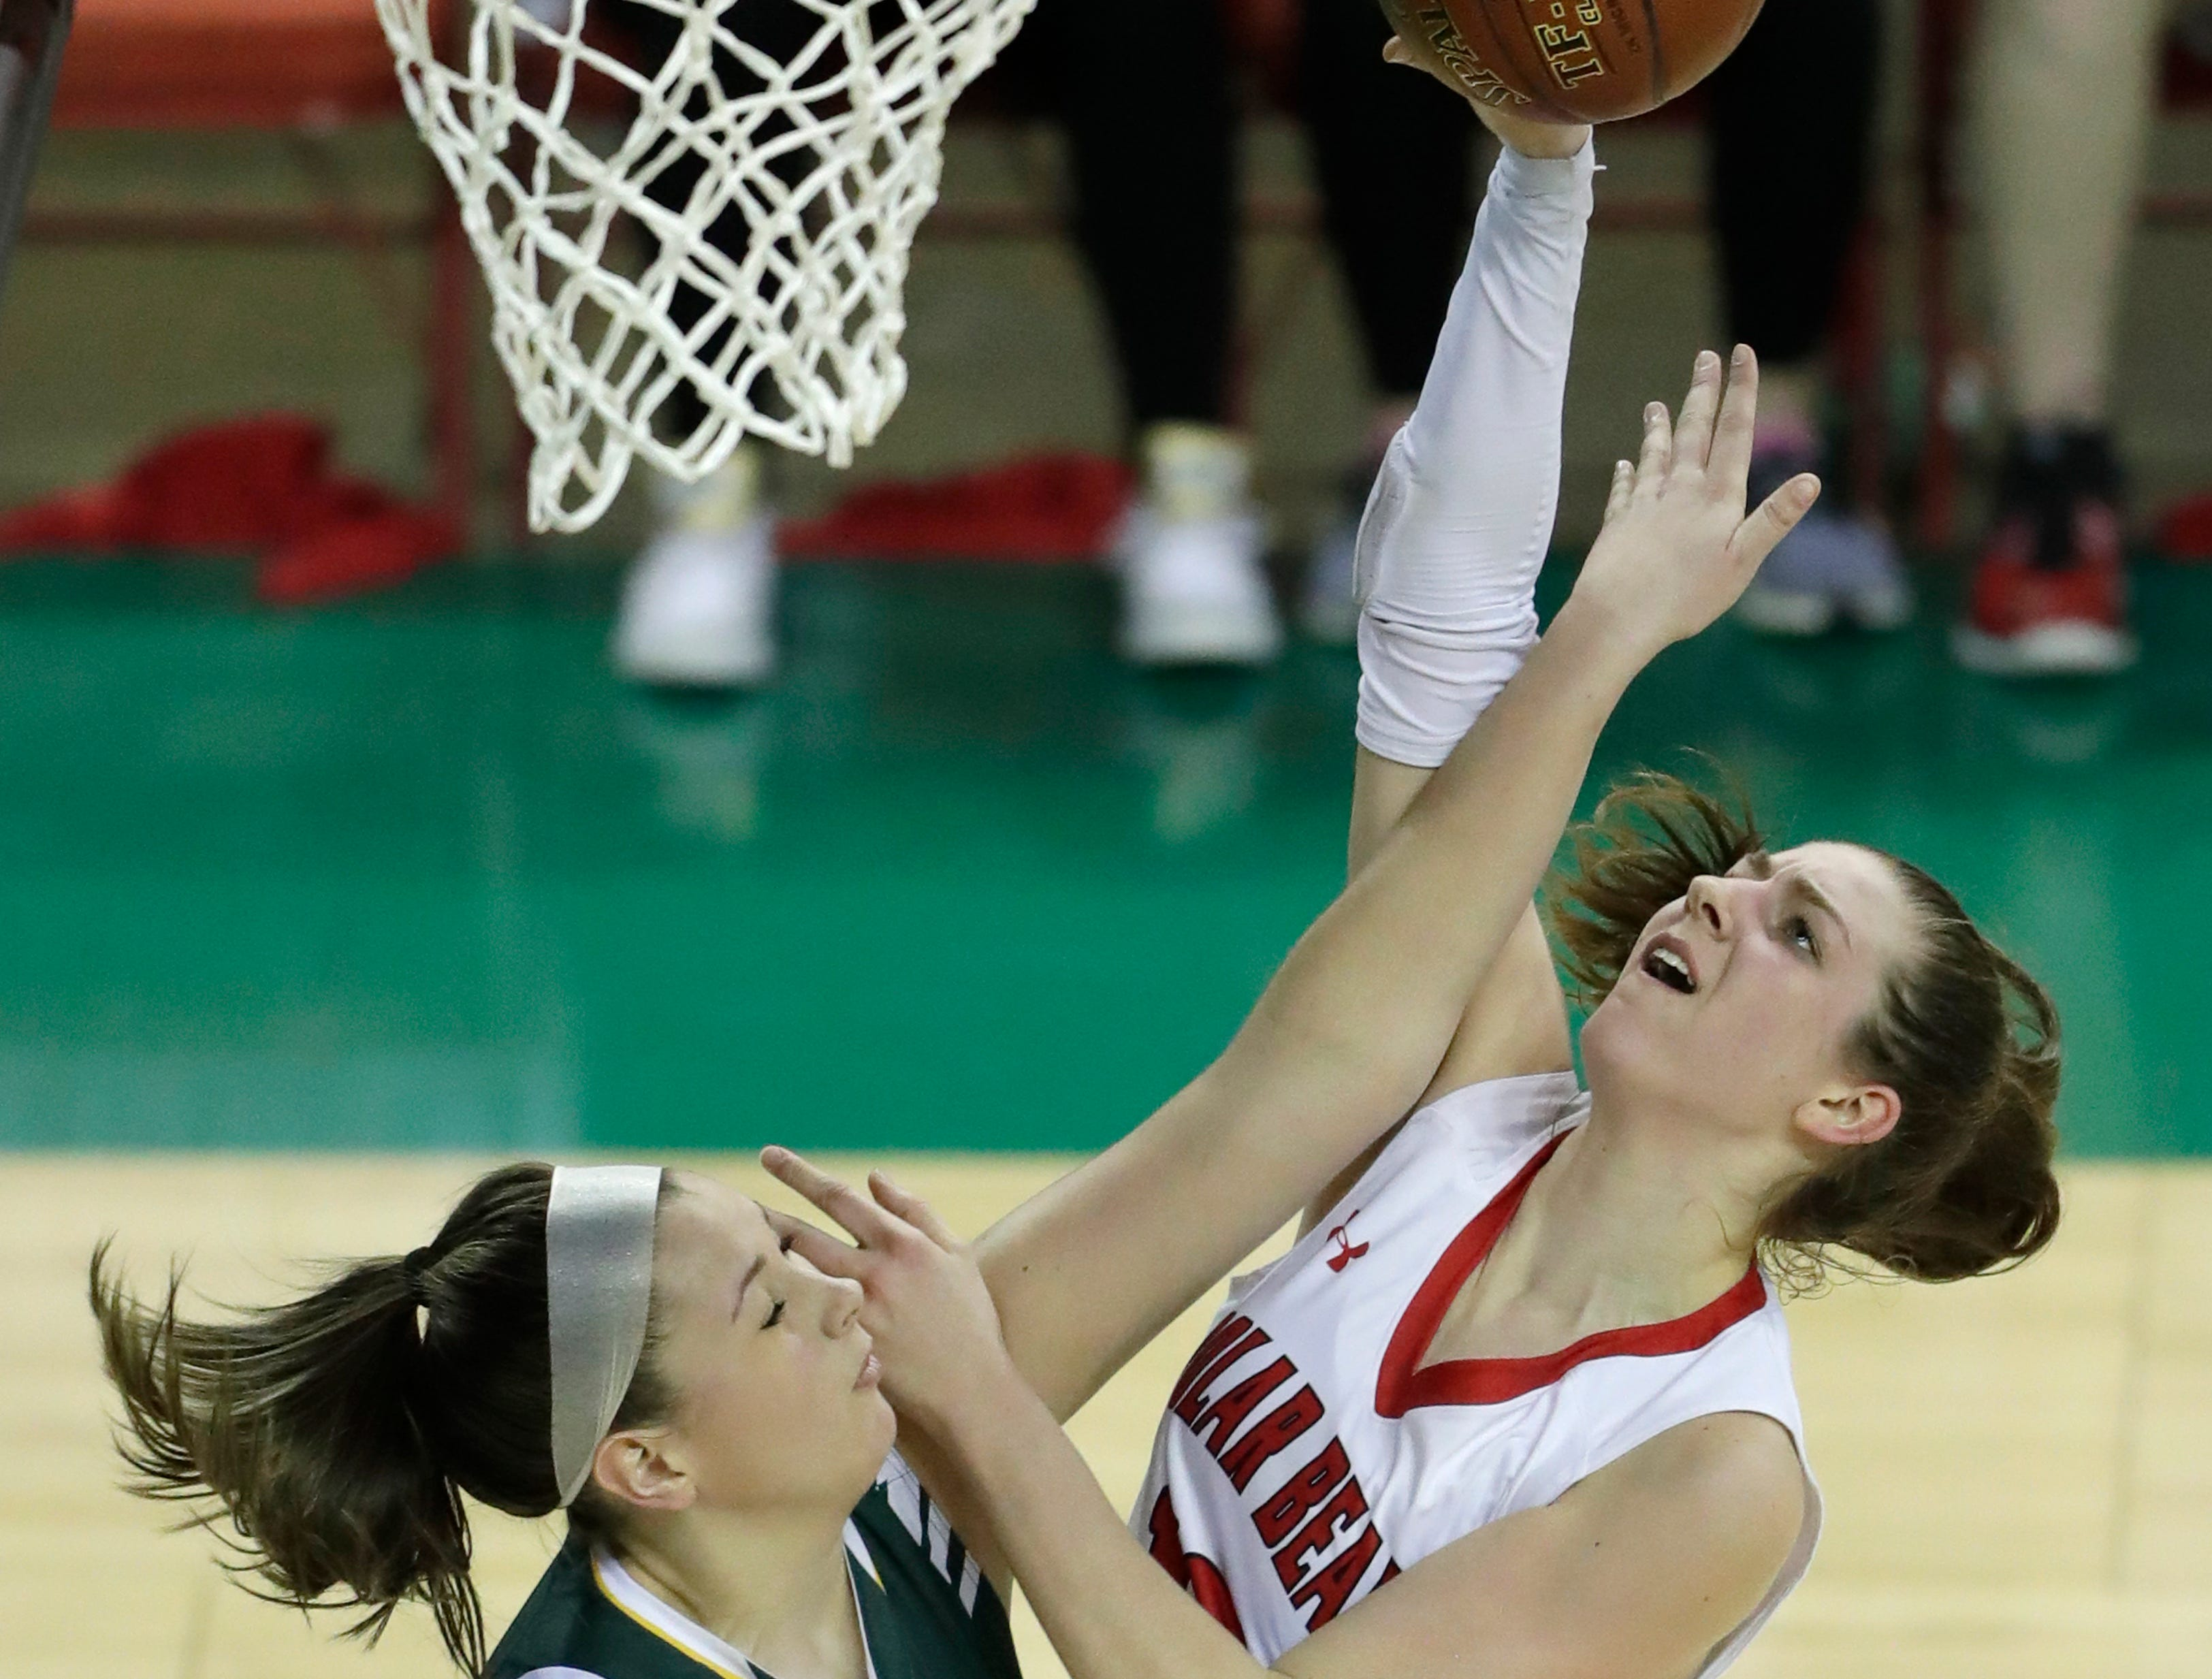 Hortonville's Macy McGlone (13) is fouled as she puts up a shot against Beaver Dam's Aly Van Loo (42) during their Division 2 semifinal game at the WIAA girls state basketball tournament Friday, March 8, 2019, at the Resch Center in Ashwaubenon, Wis. Dan Powers/USA TODAY NETWORK-Wisconsin